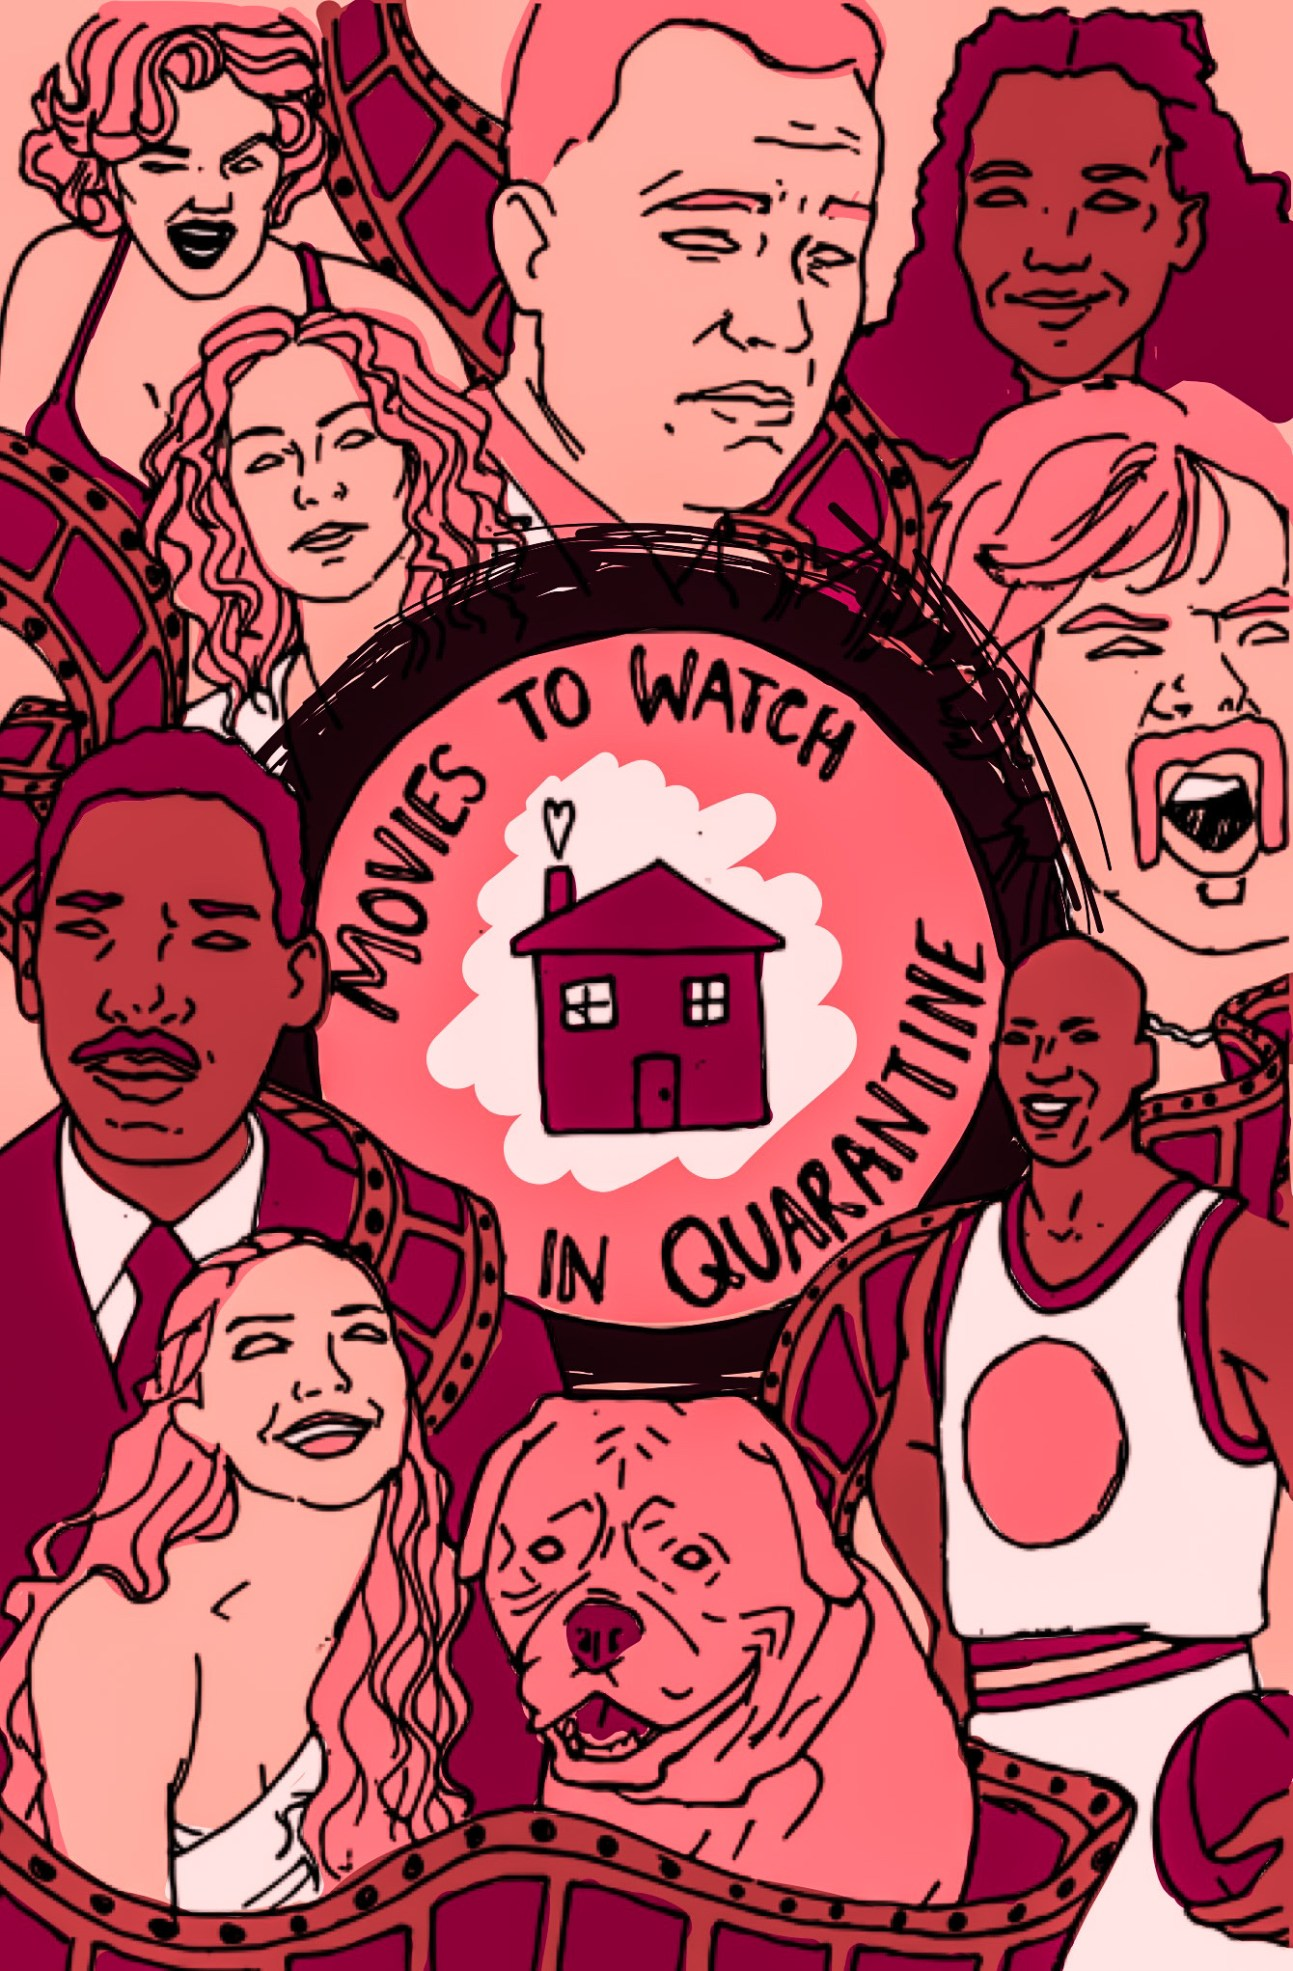 Movies to watch in quarantine visual - Sam Ford